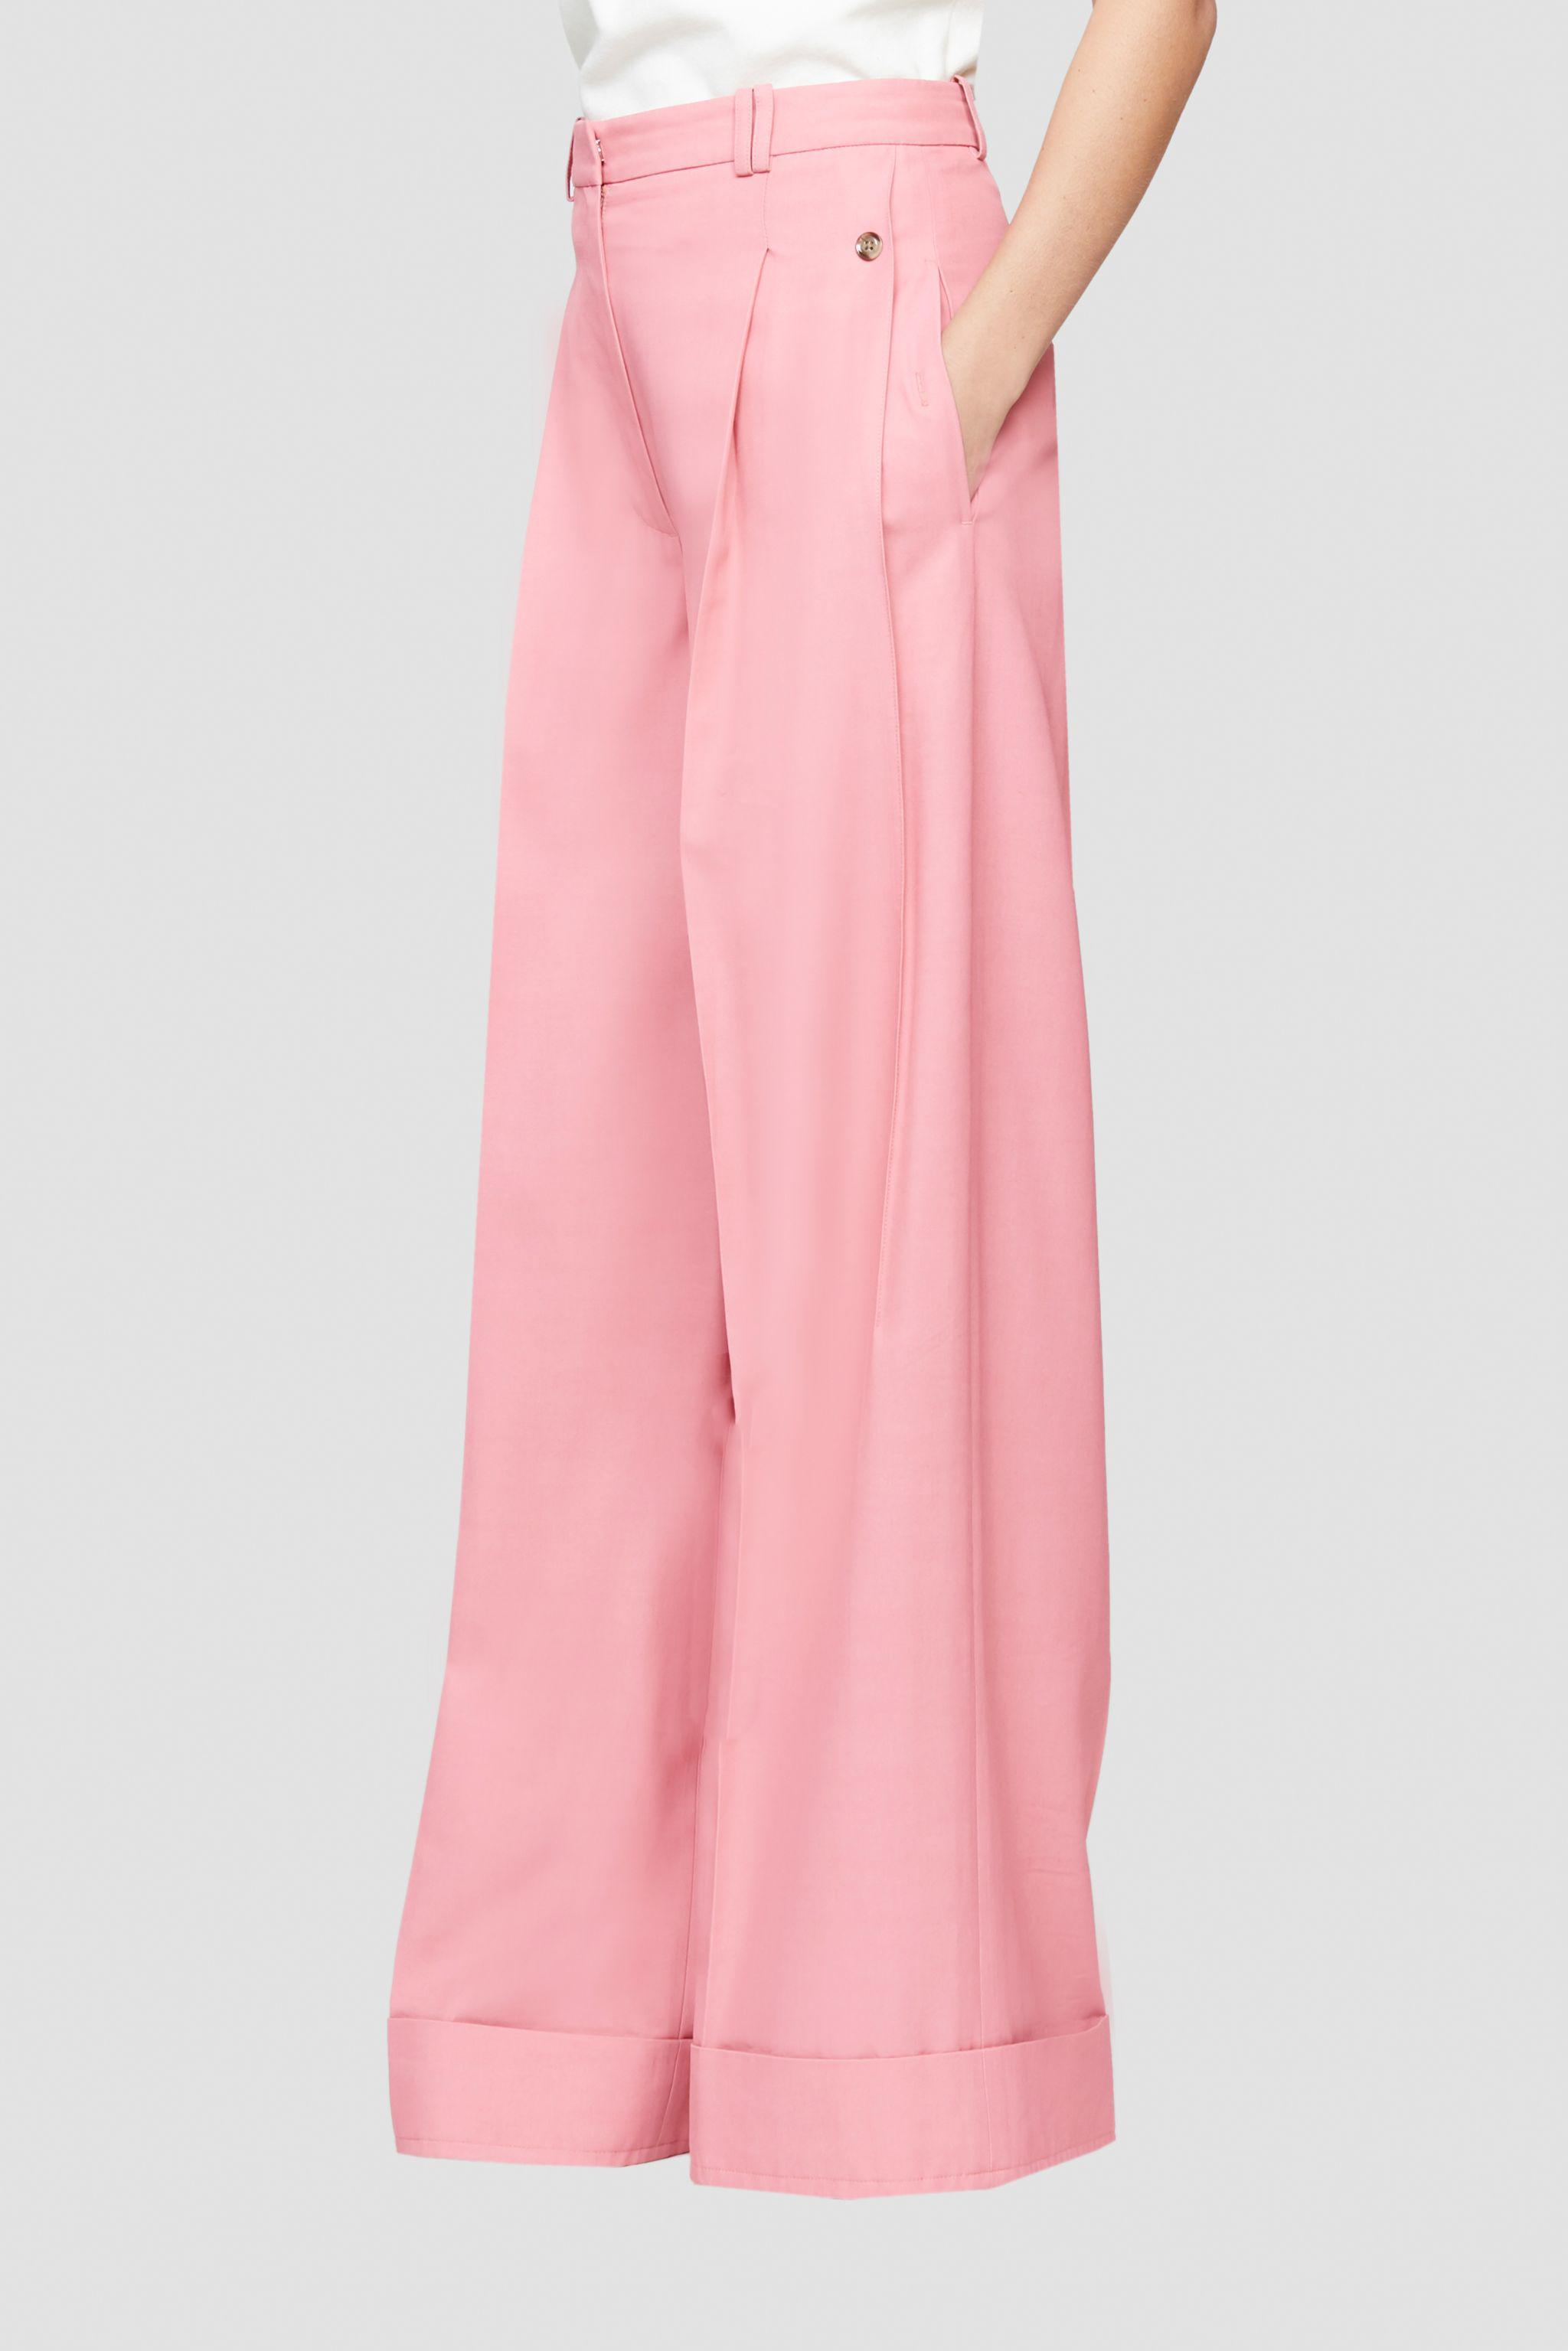 Flou pressed-crease palazzo trousers 2